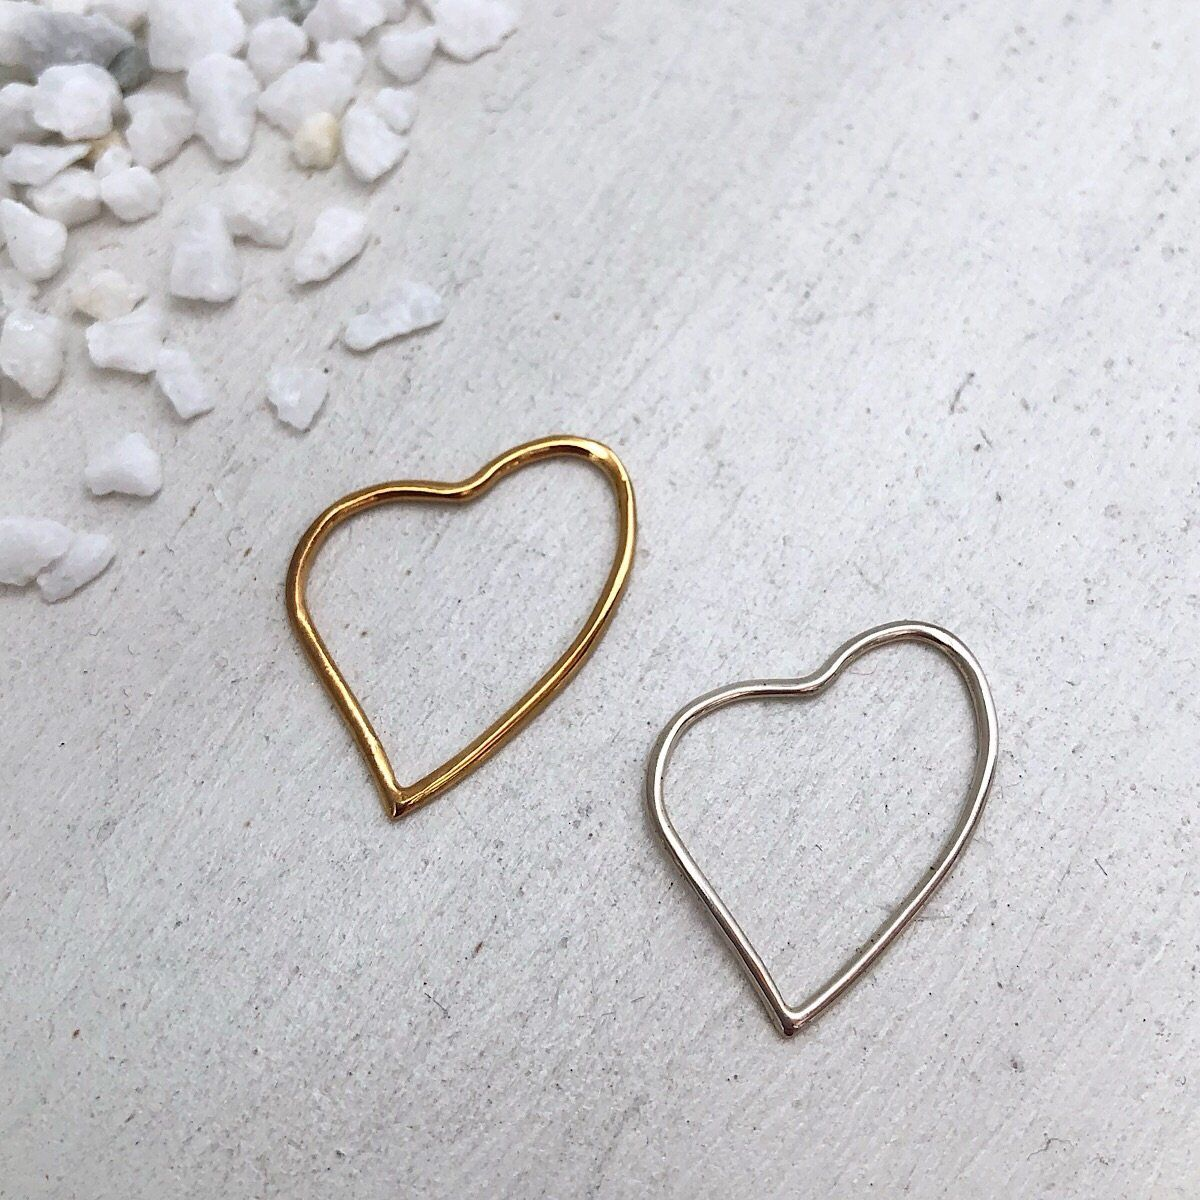 Outline Heart Charm  - IsabelleGraceJewelry